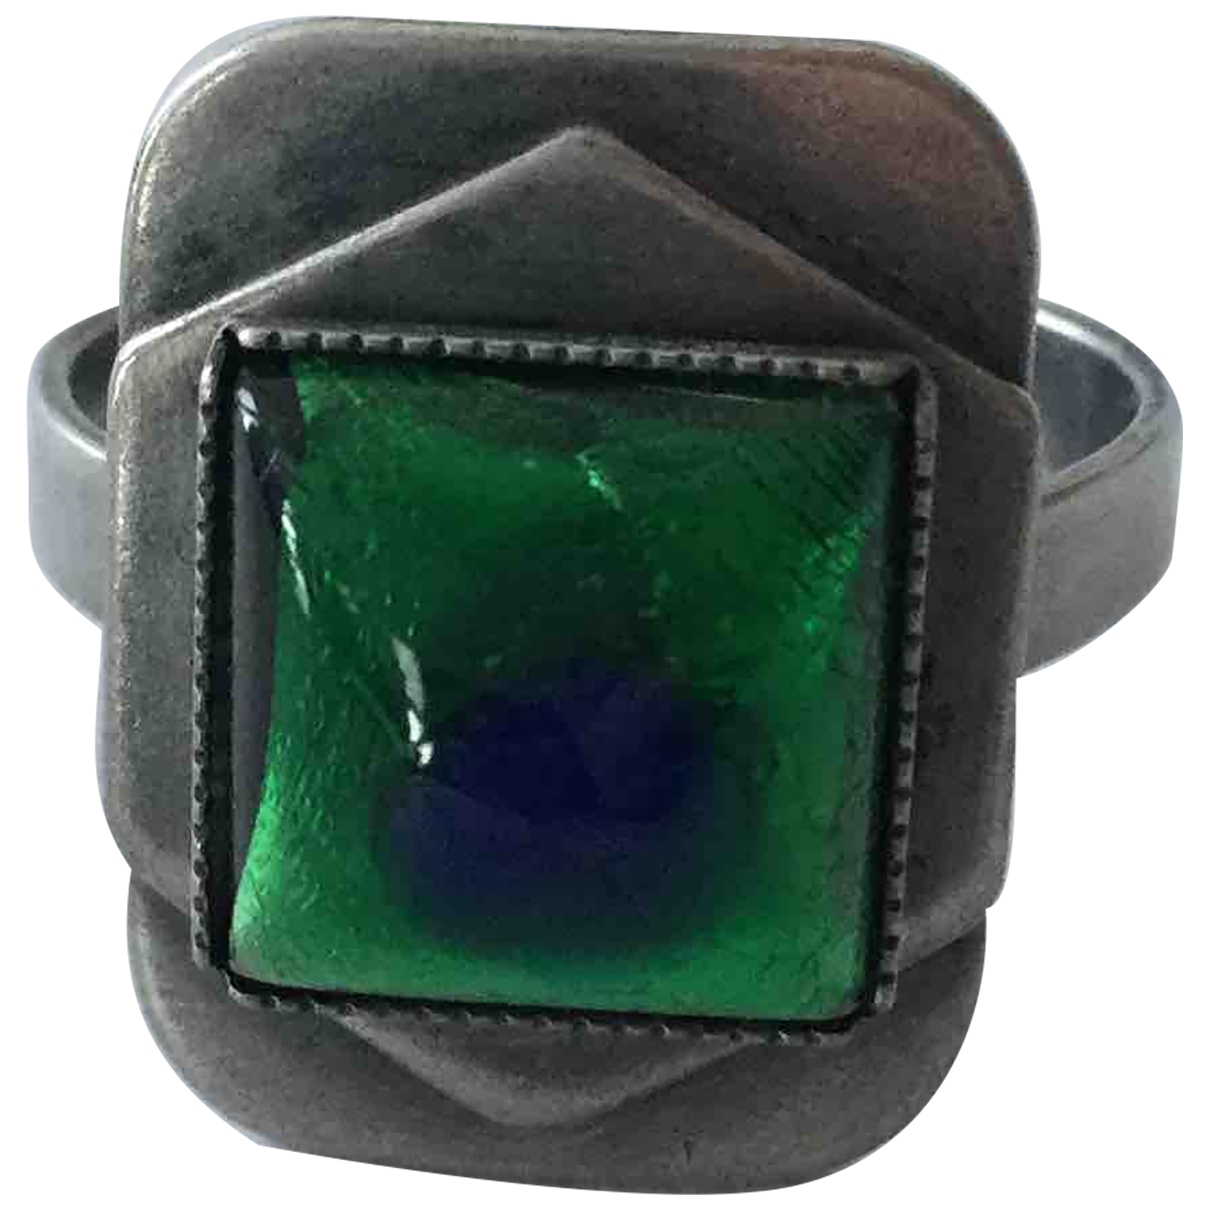 Non Signé / Unsigned Motifs Ethniques Green Metal ring for Women 56 EU